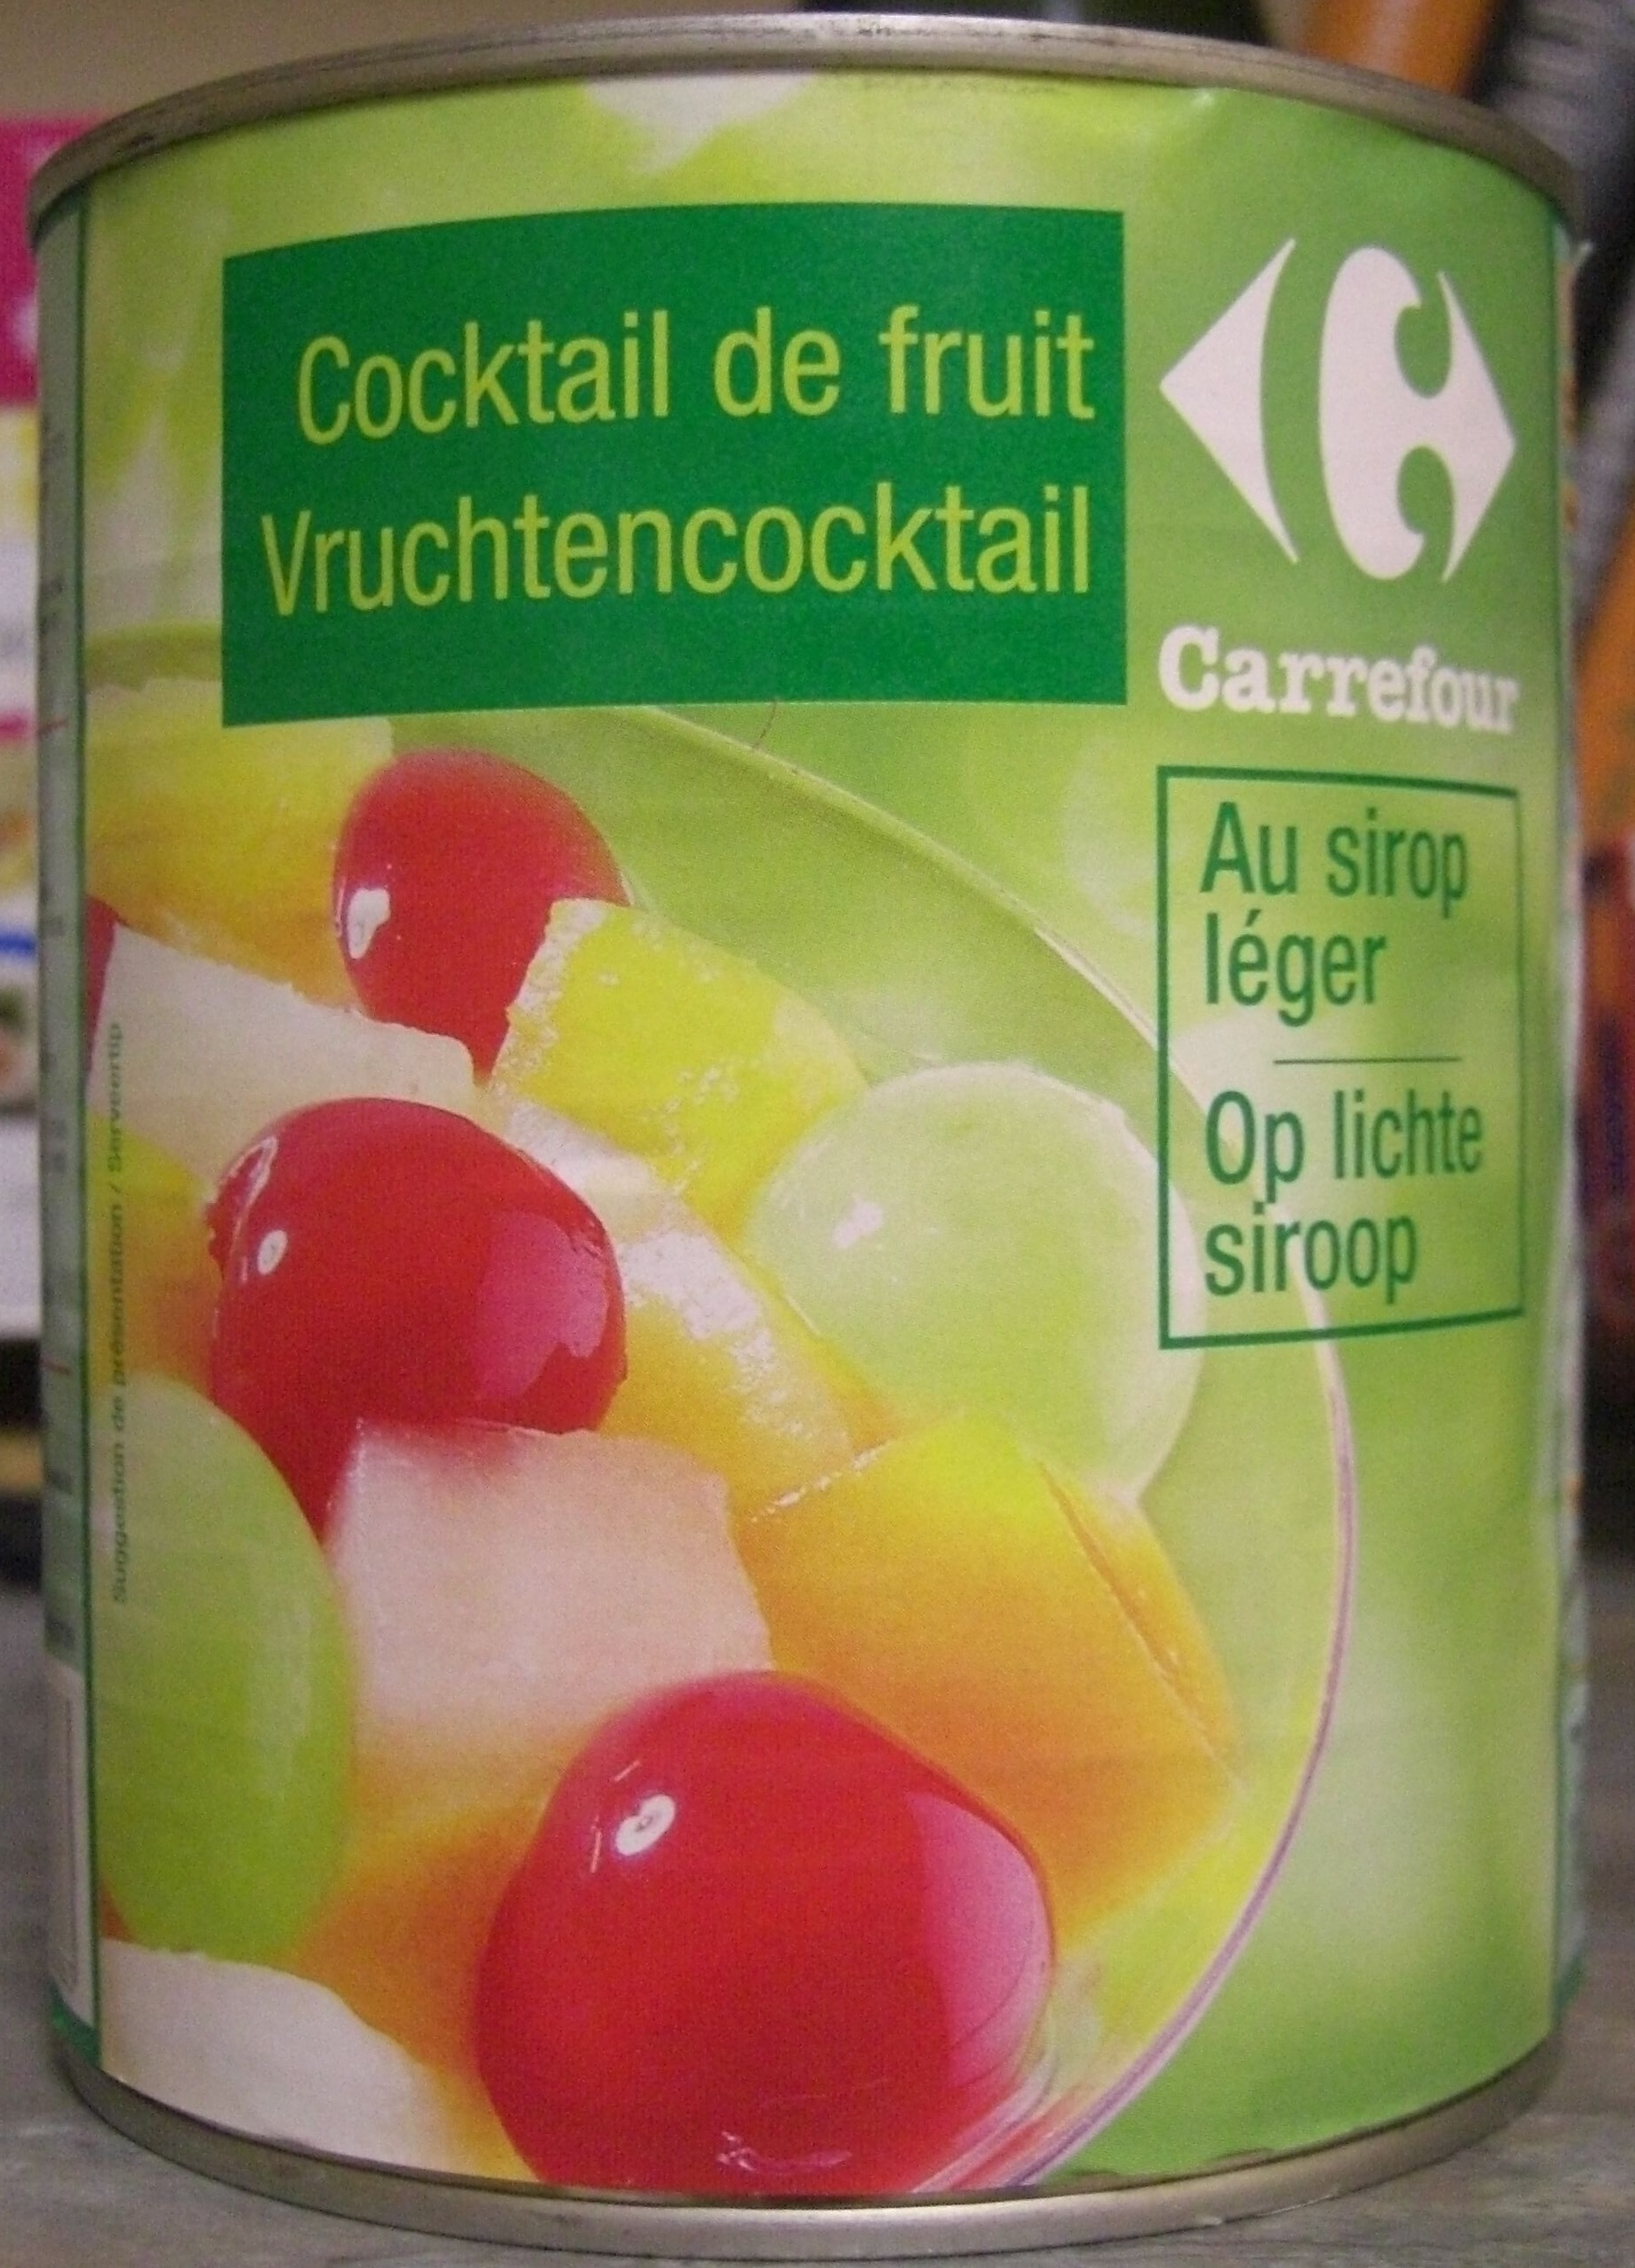 Cocktail de fruits au sirop l ger carrefour 500 g for Cocktail de fruit